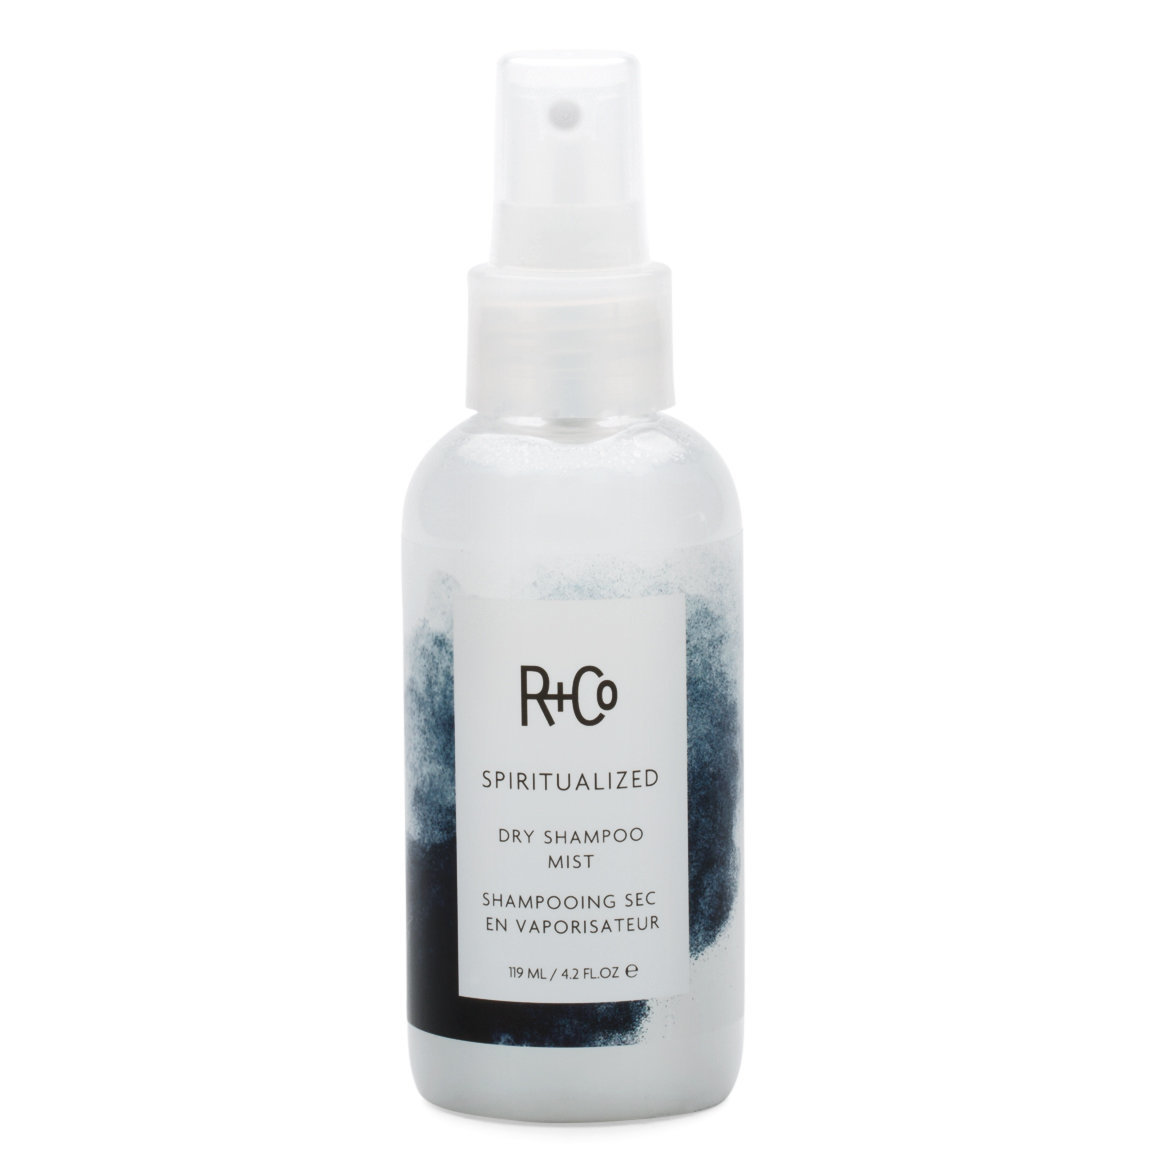 R+Co Spiritualized Dry Shampoo Mist 4.2 fl oz product smear.